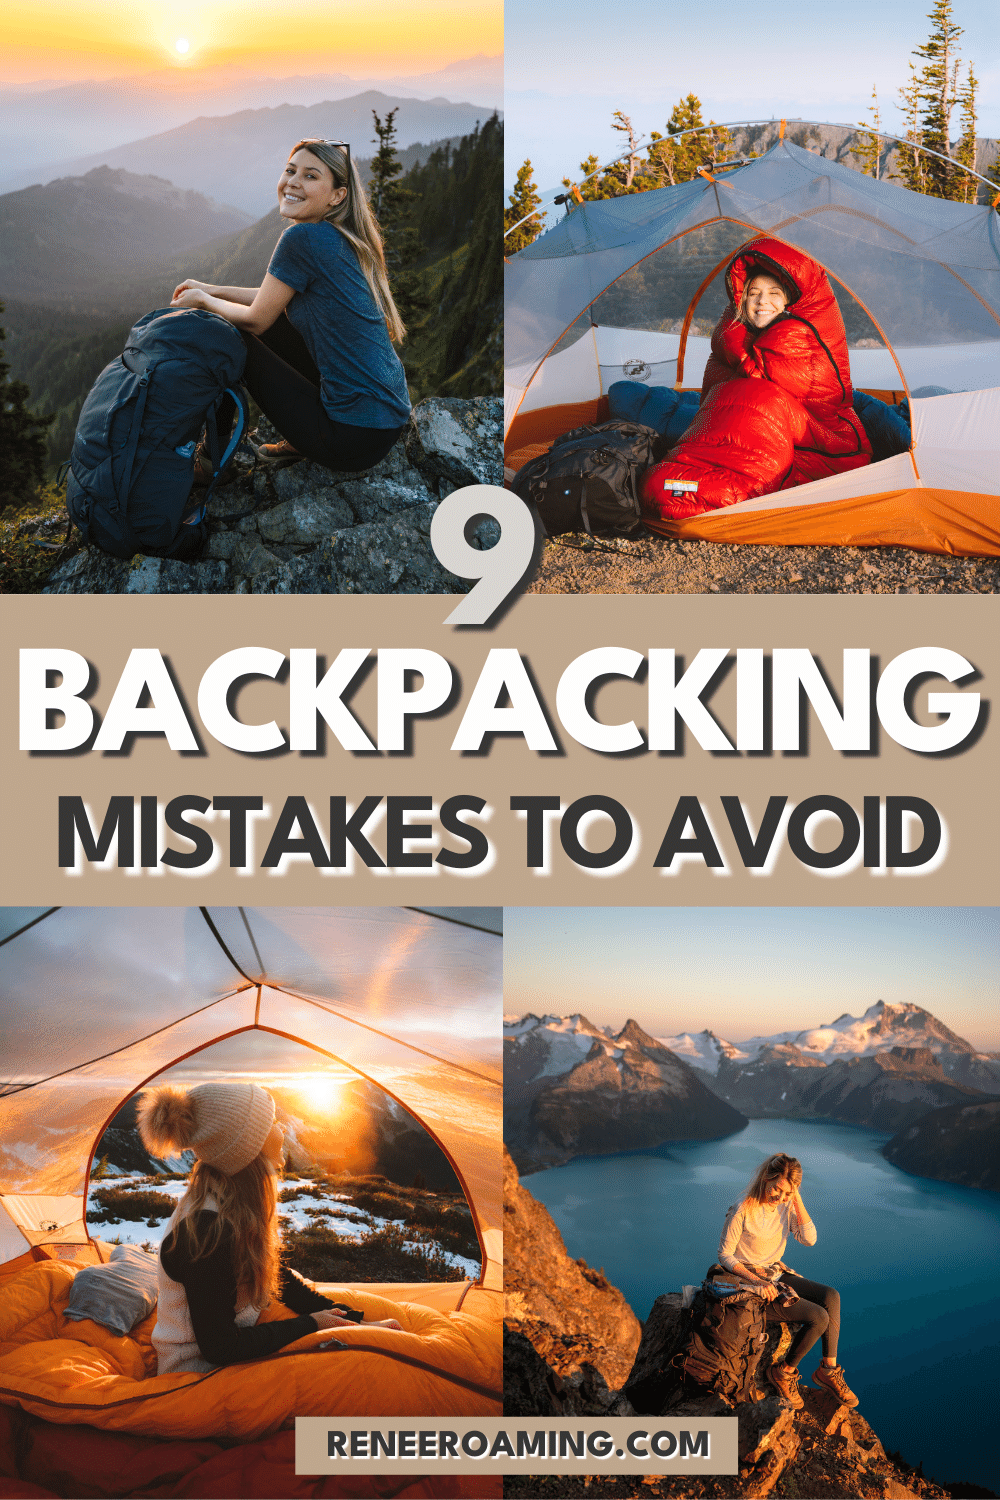 9 Backpacking Mistakes to Avoid: Must Know Beginner Backpacking Tips